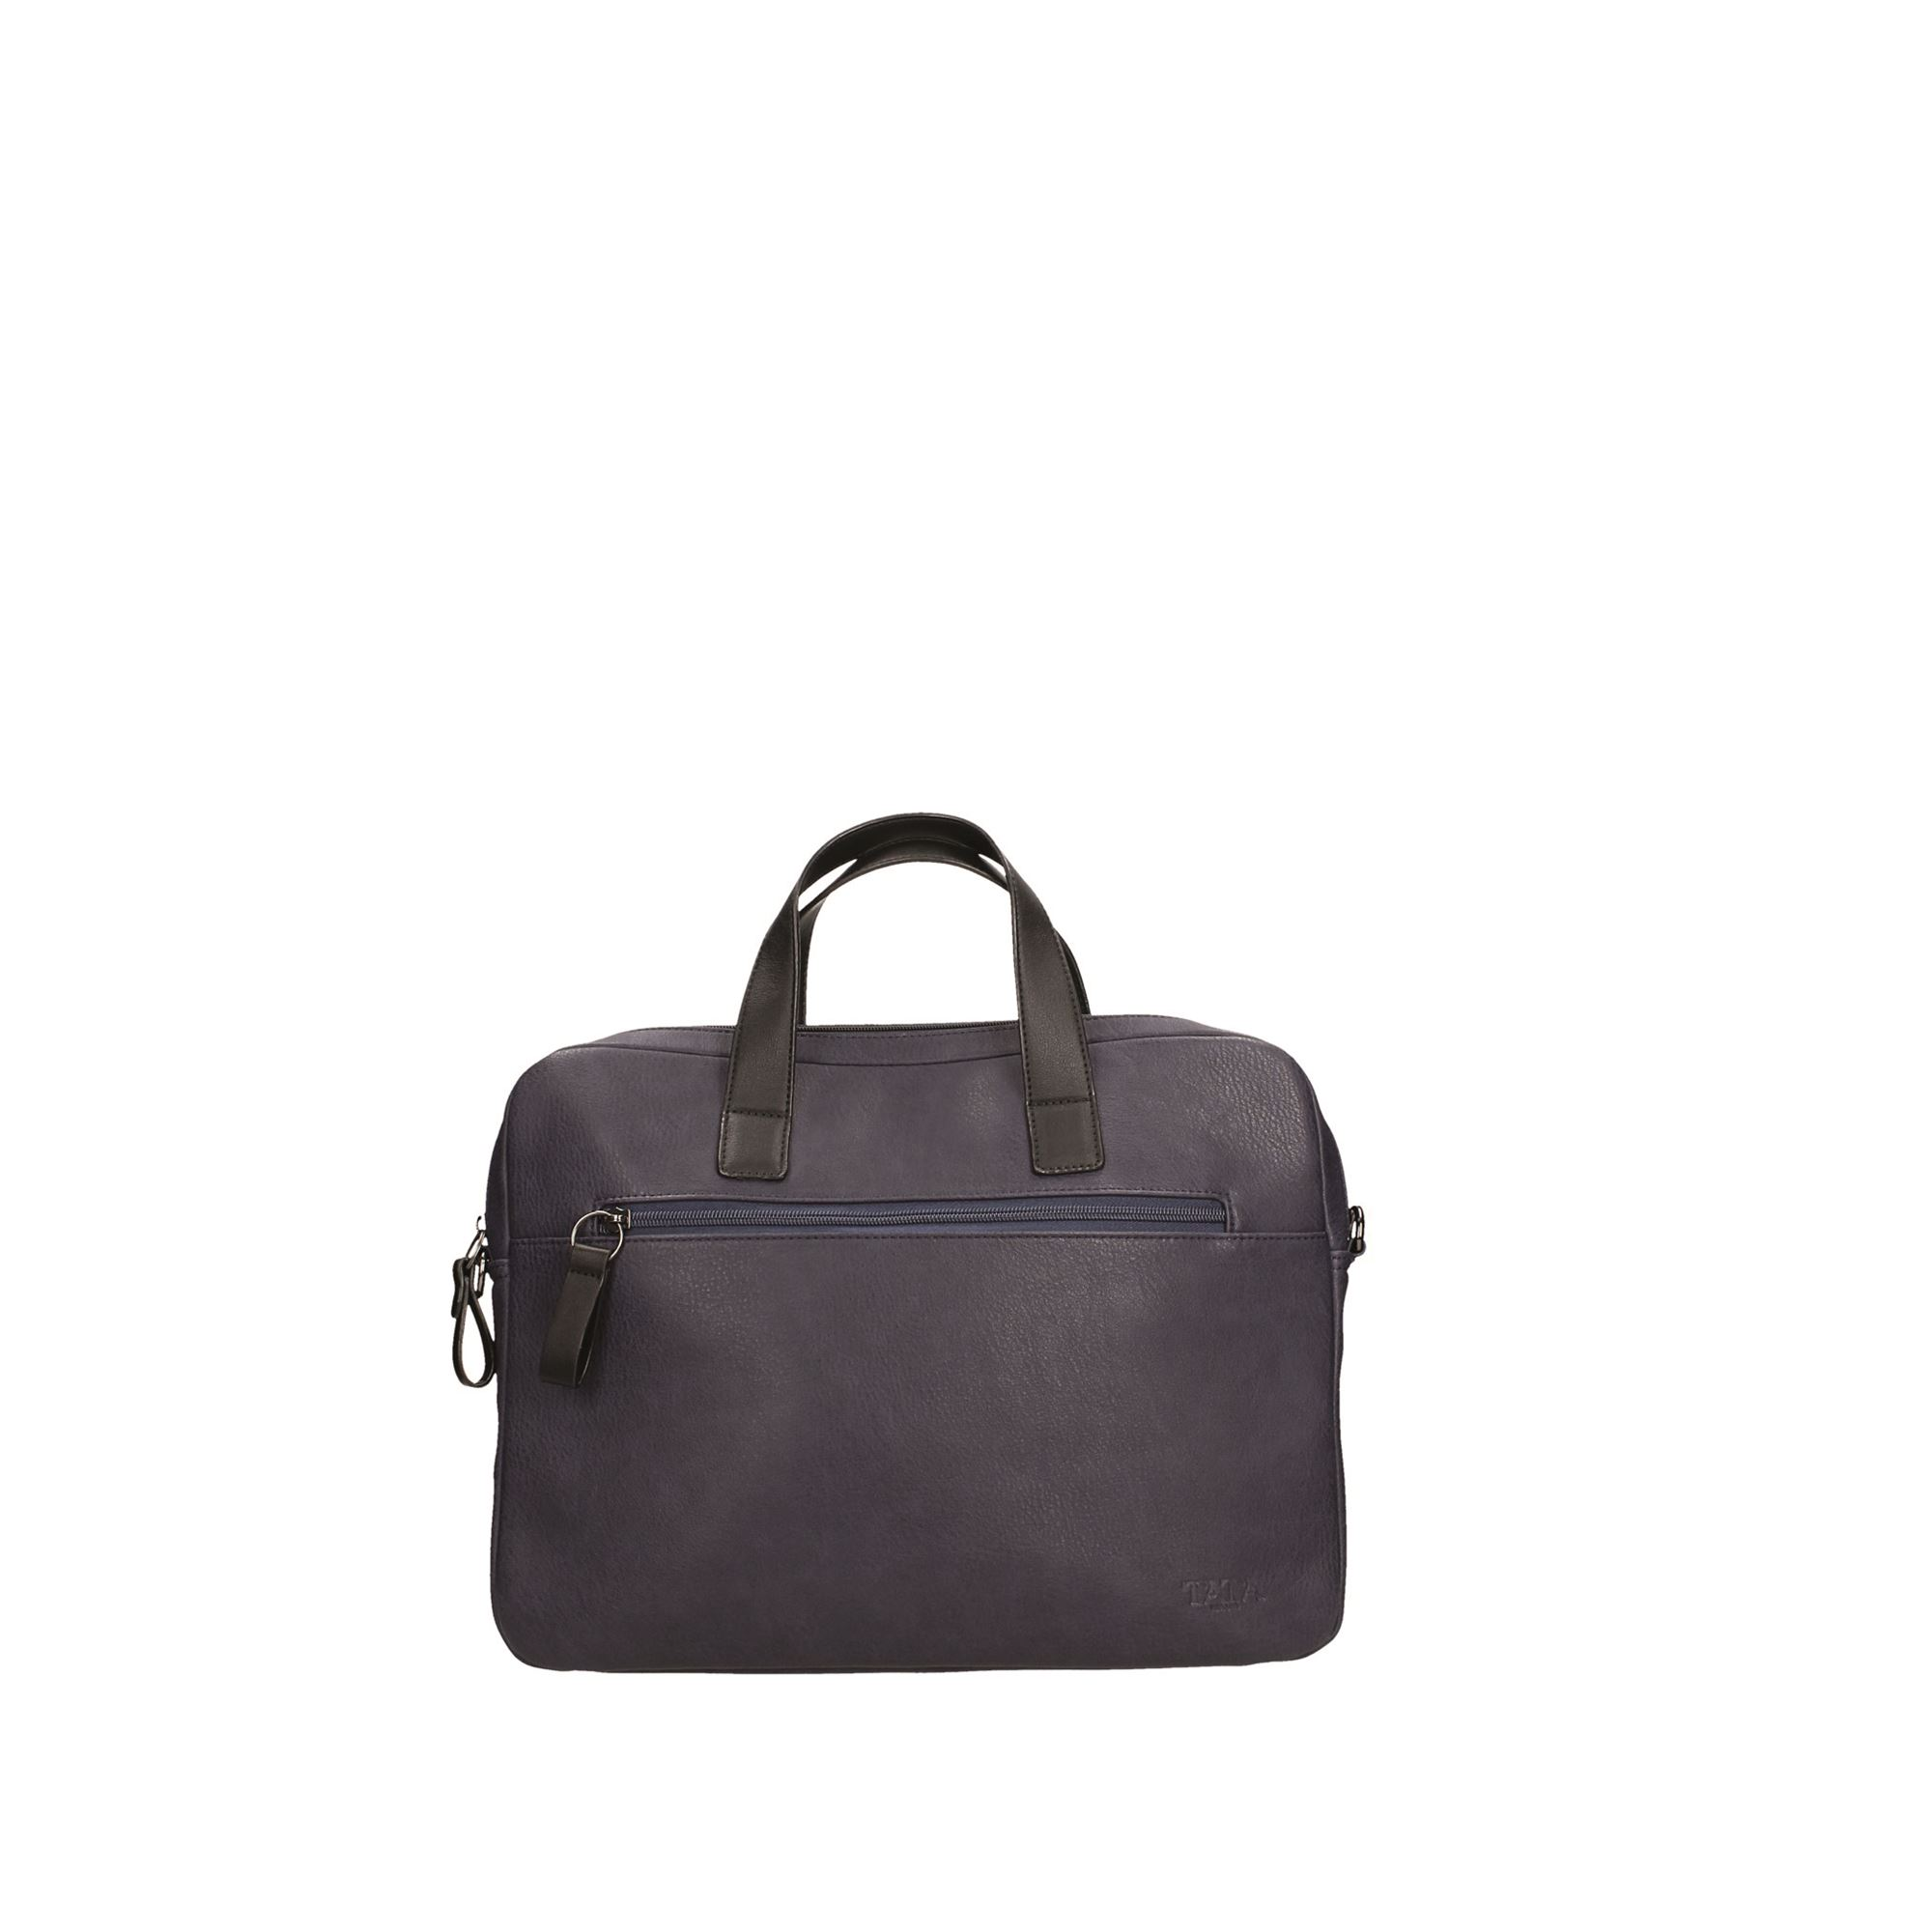 Tata Italia Accessories Man Bags Blue MA234